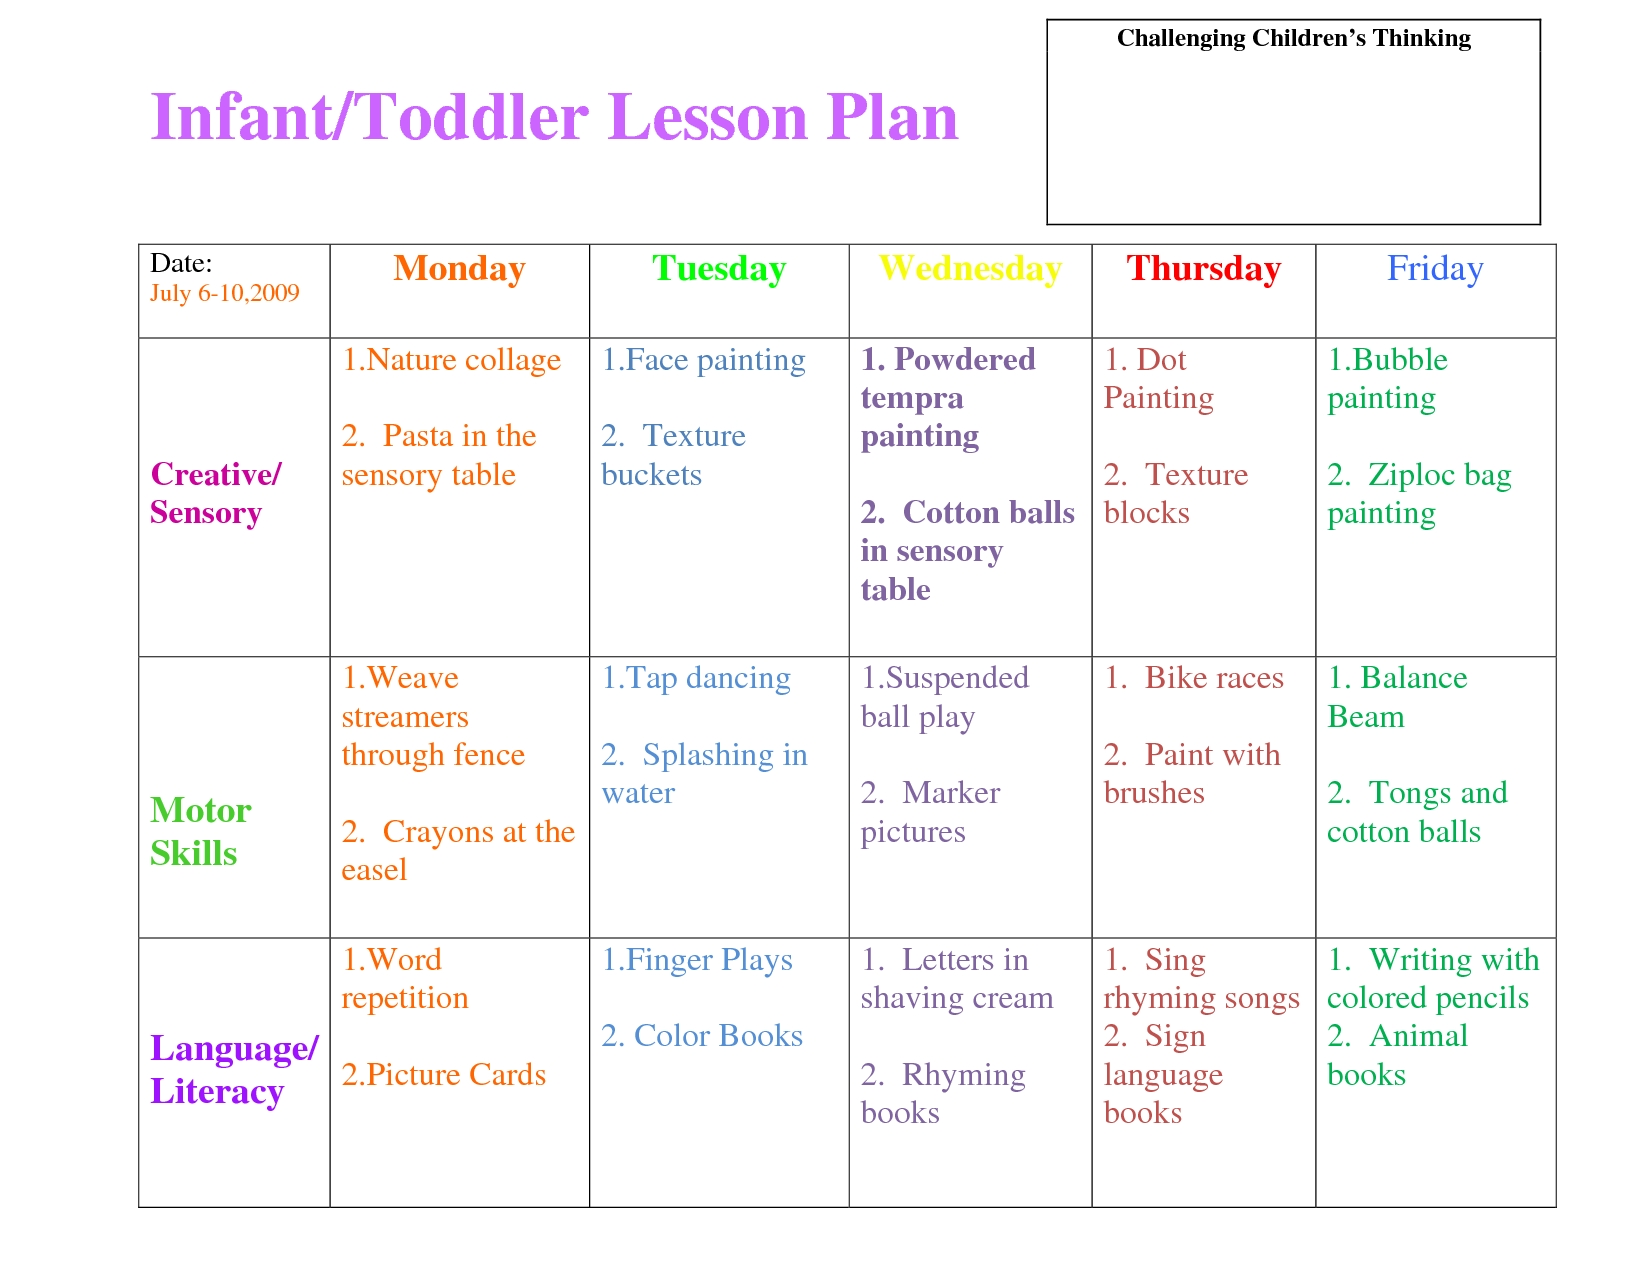 10 Lovely Lesson Plan Ideas For Preschoolers infant blank lesson plan sheets infanttoddler lesson plan lesson 2